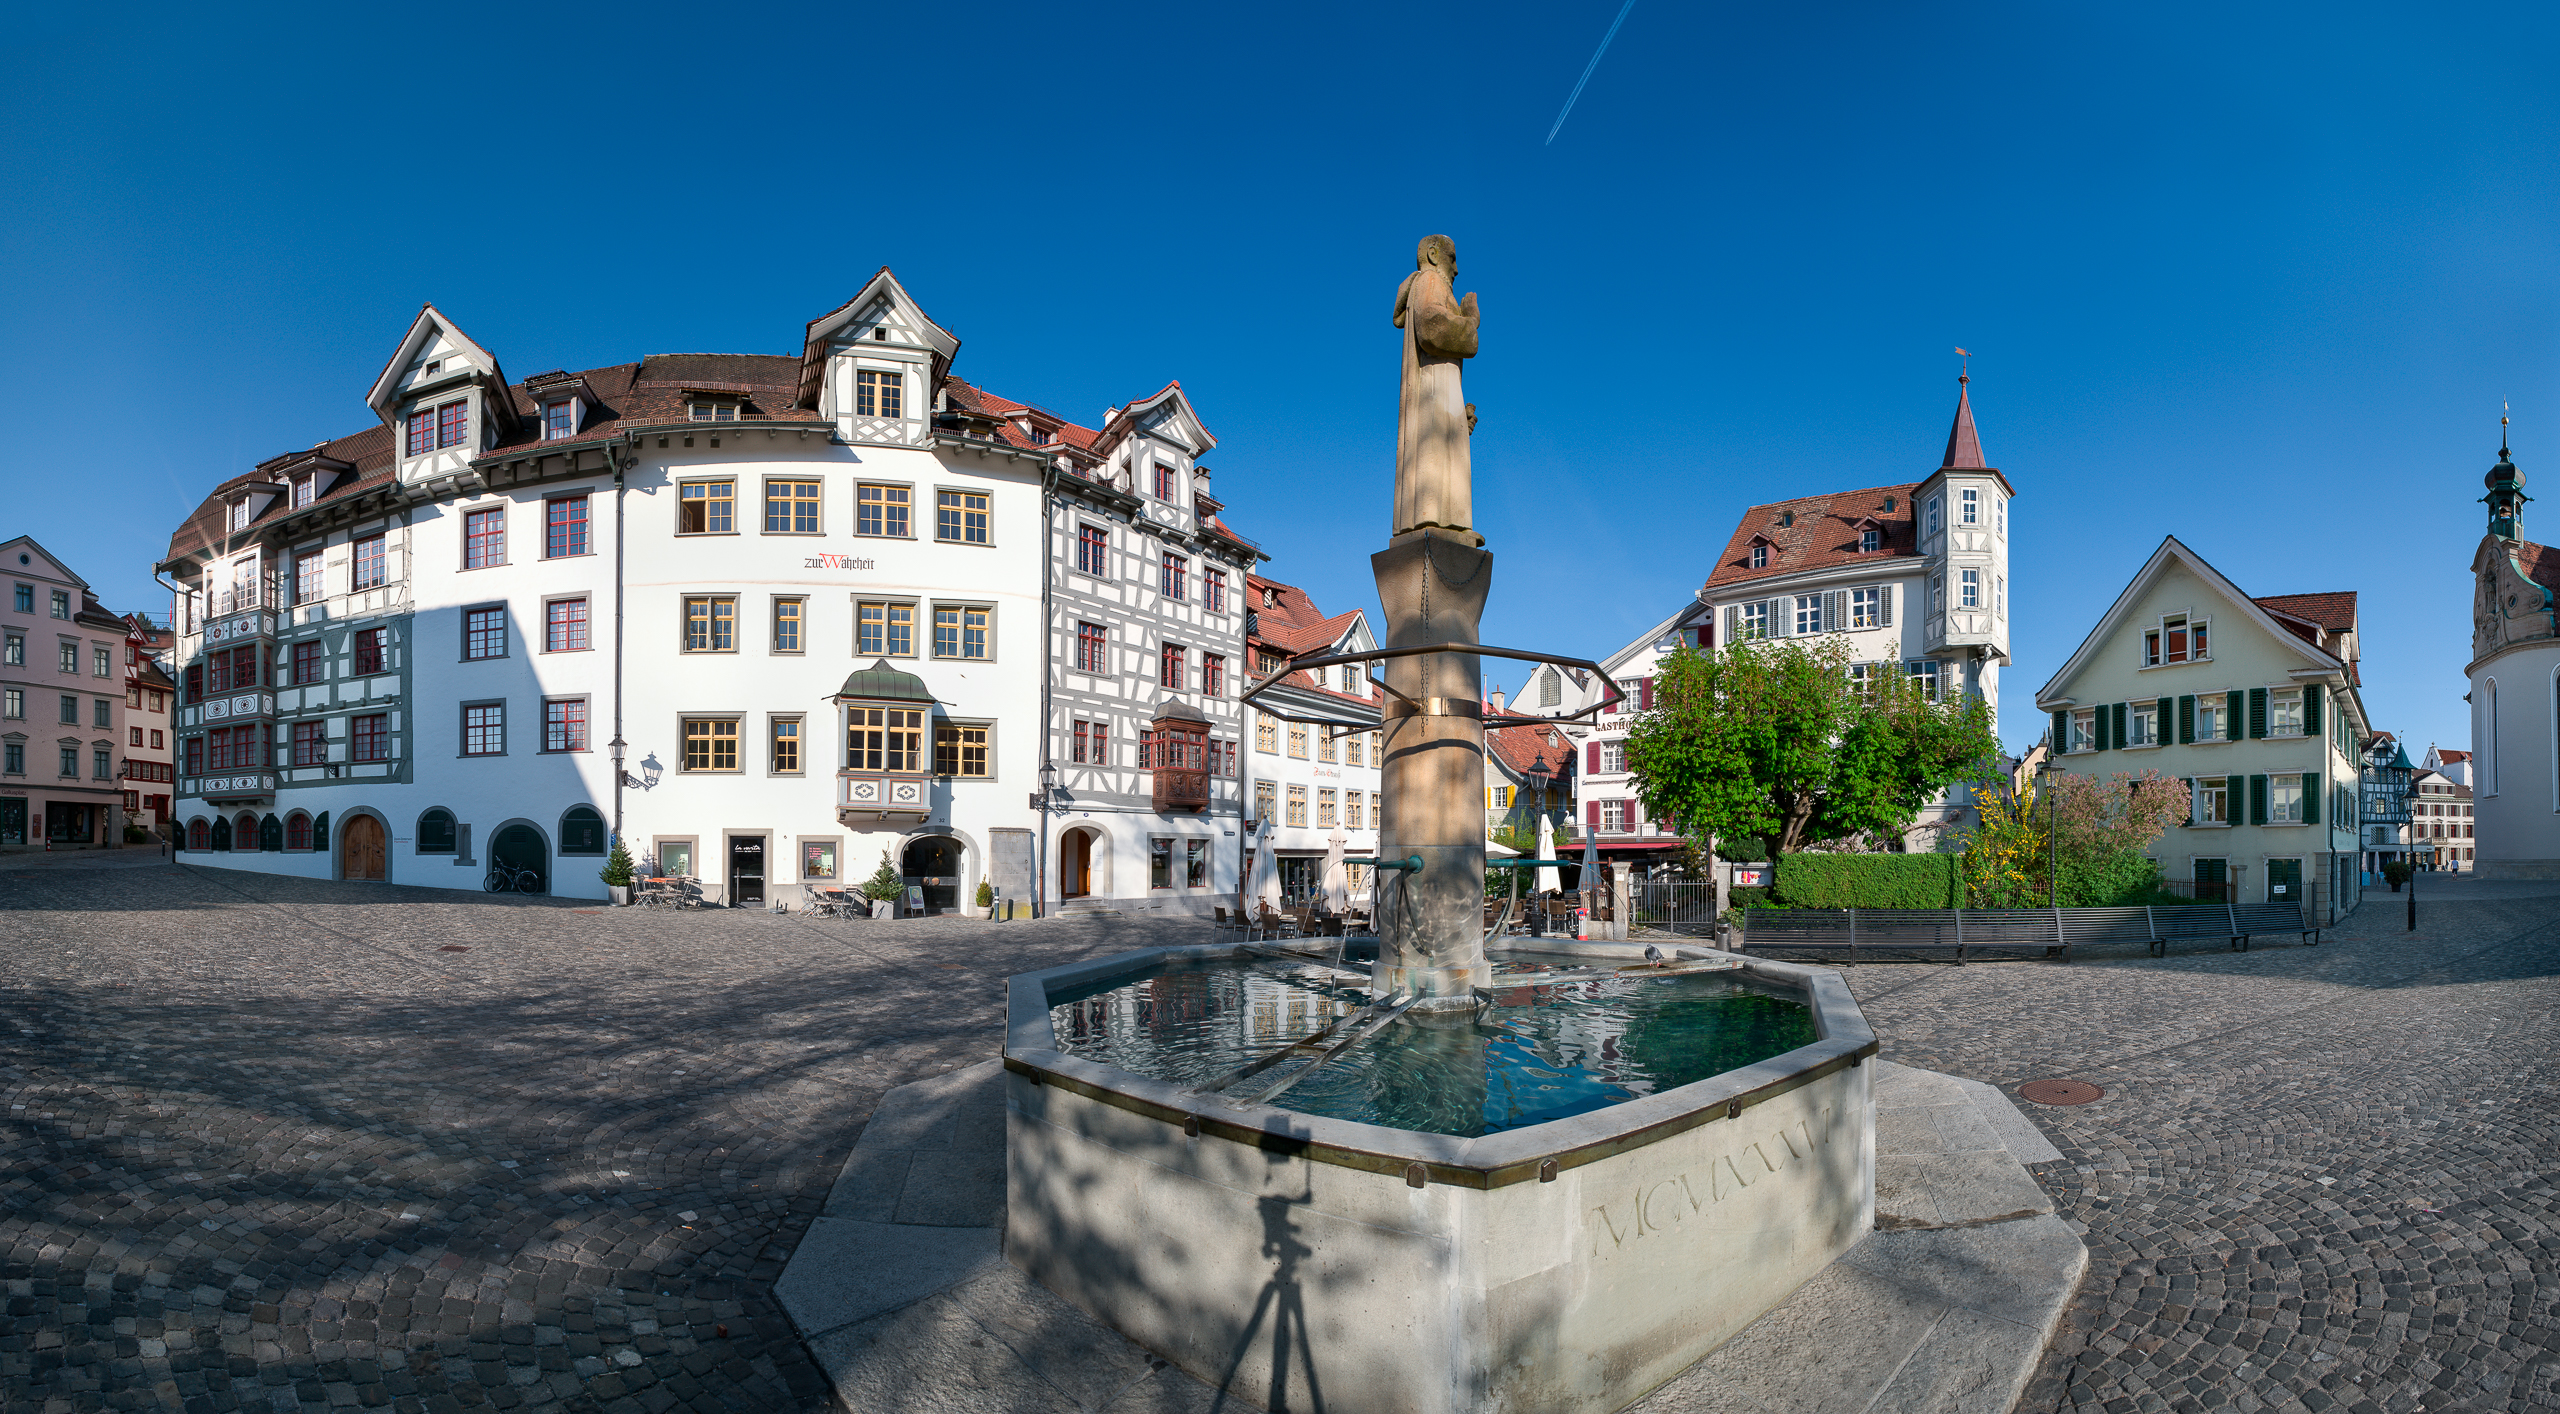 Quartierverein-Gallusplatz-Panorama-April 2018-1